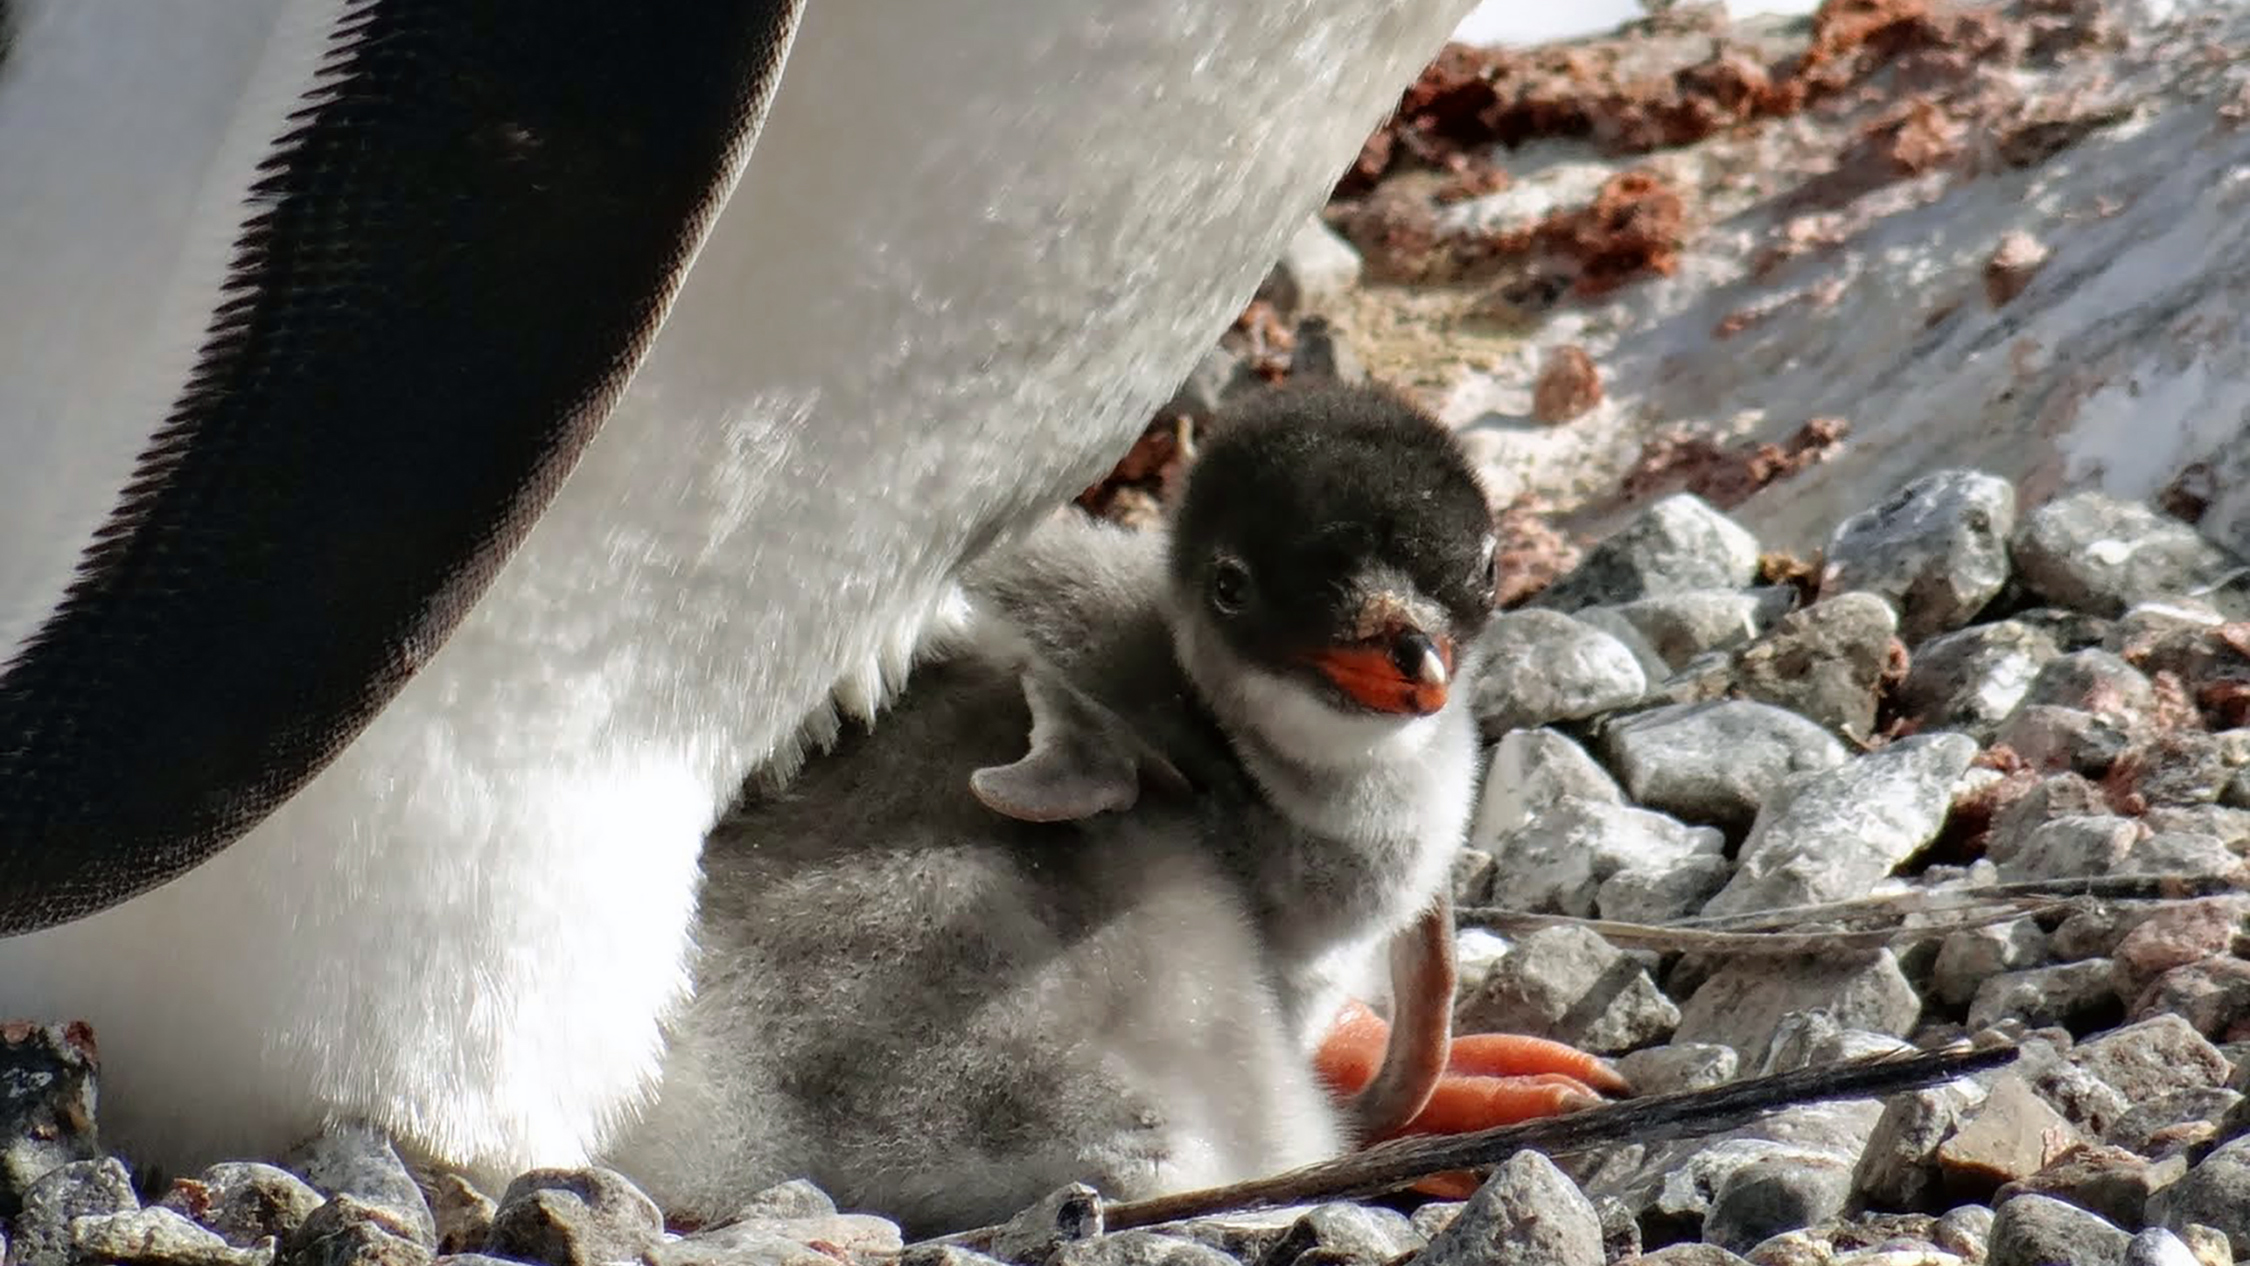 This little gentoo penguin chick was under the strict supervision of its mother in Port Lockroy.